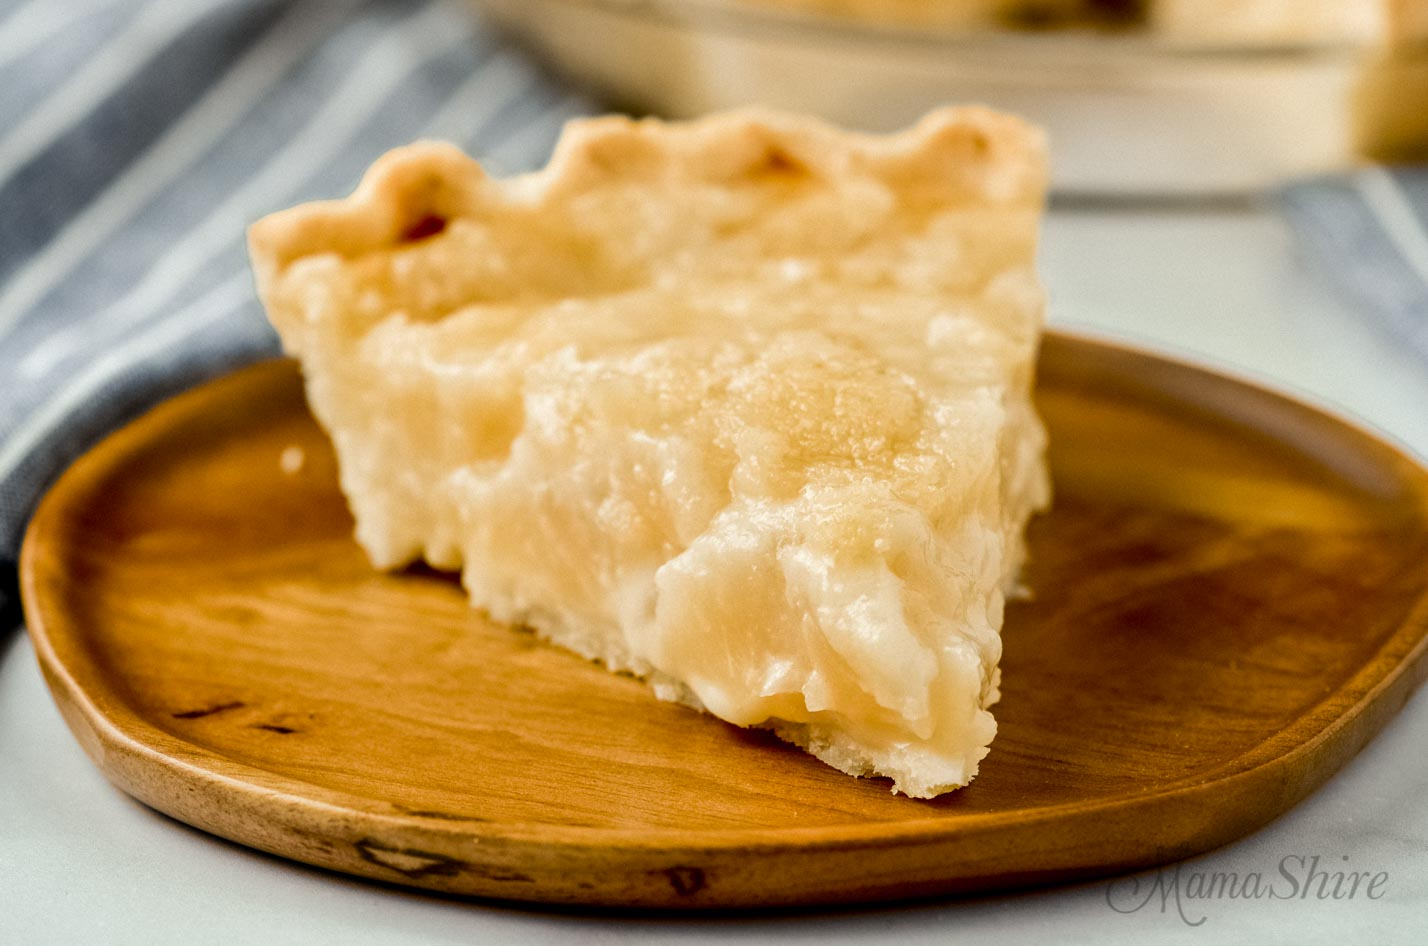 A single slice of gluten-free pear pie.